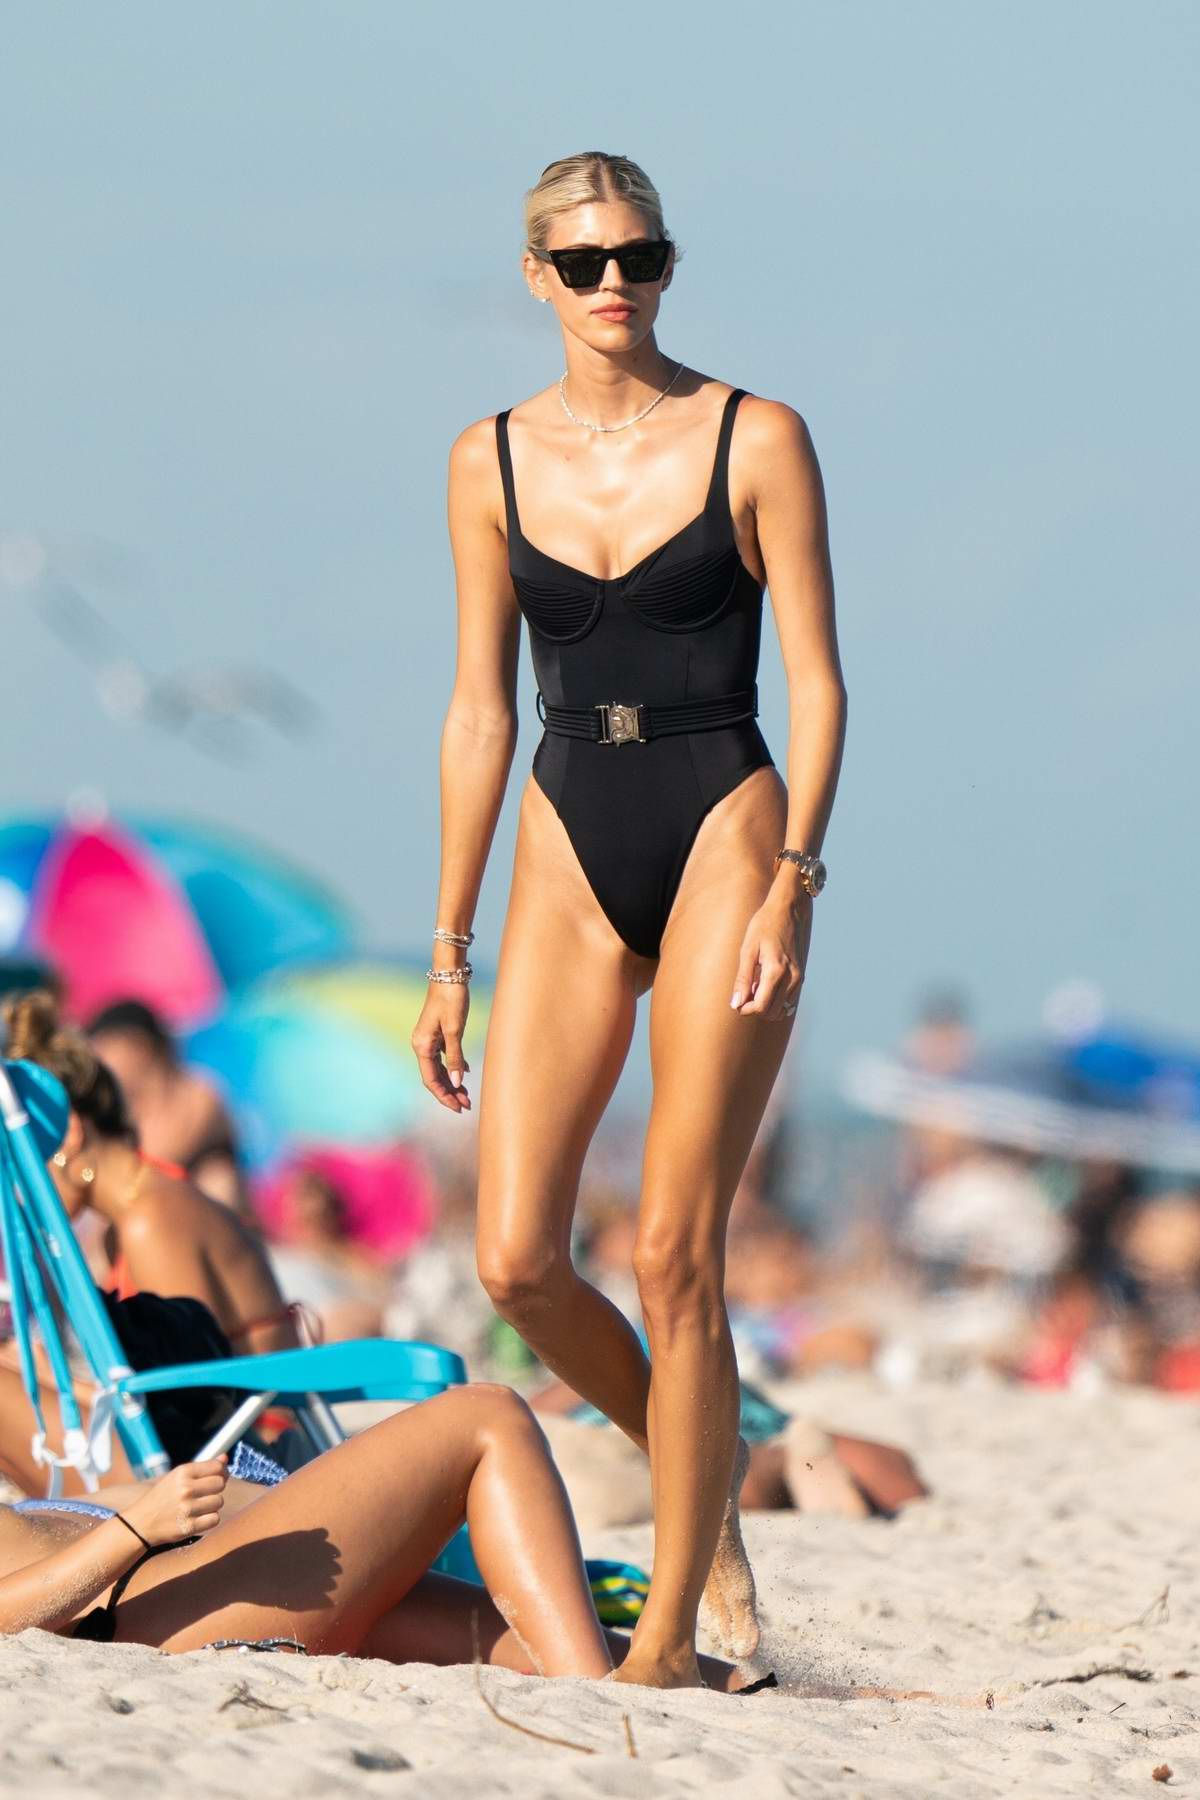 Devon Windsor shows off her model figure in a black swimsuit while enjoying a beach day in Miami, Florida